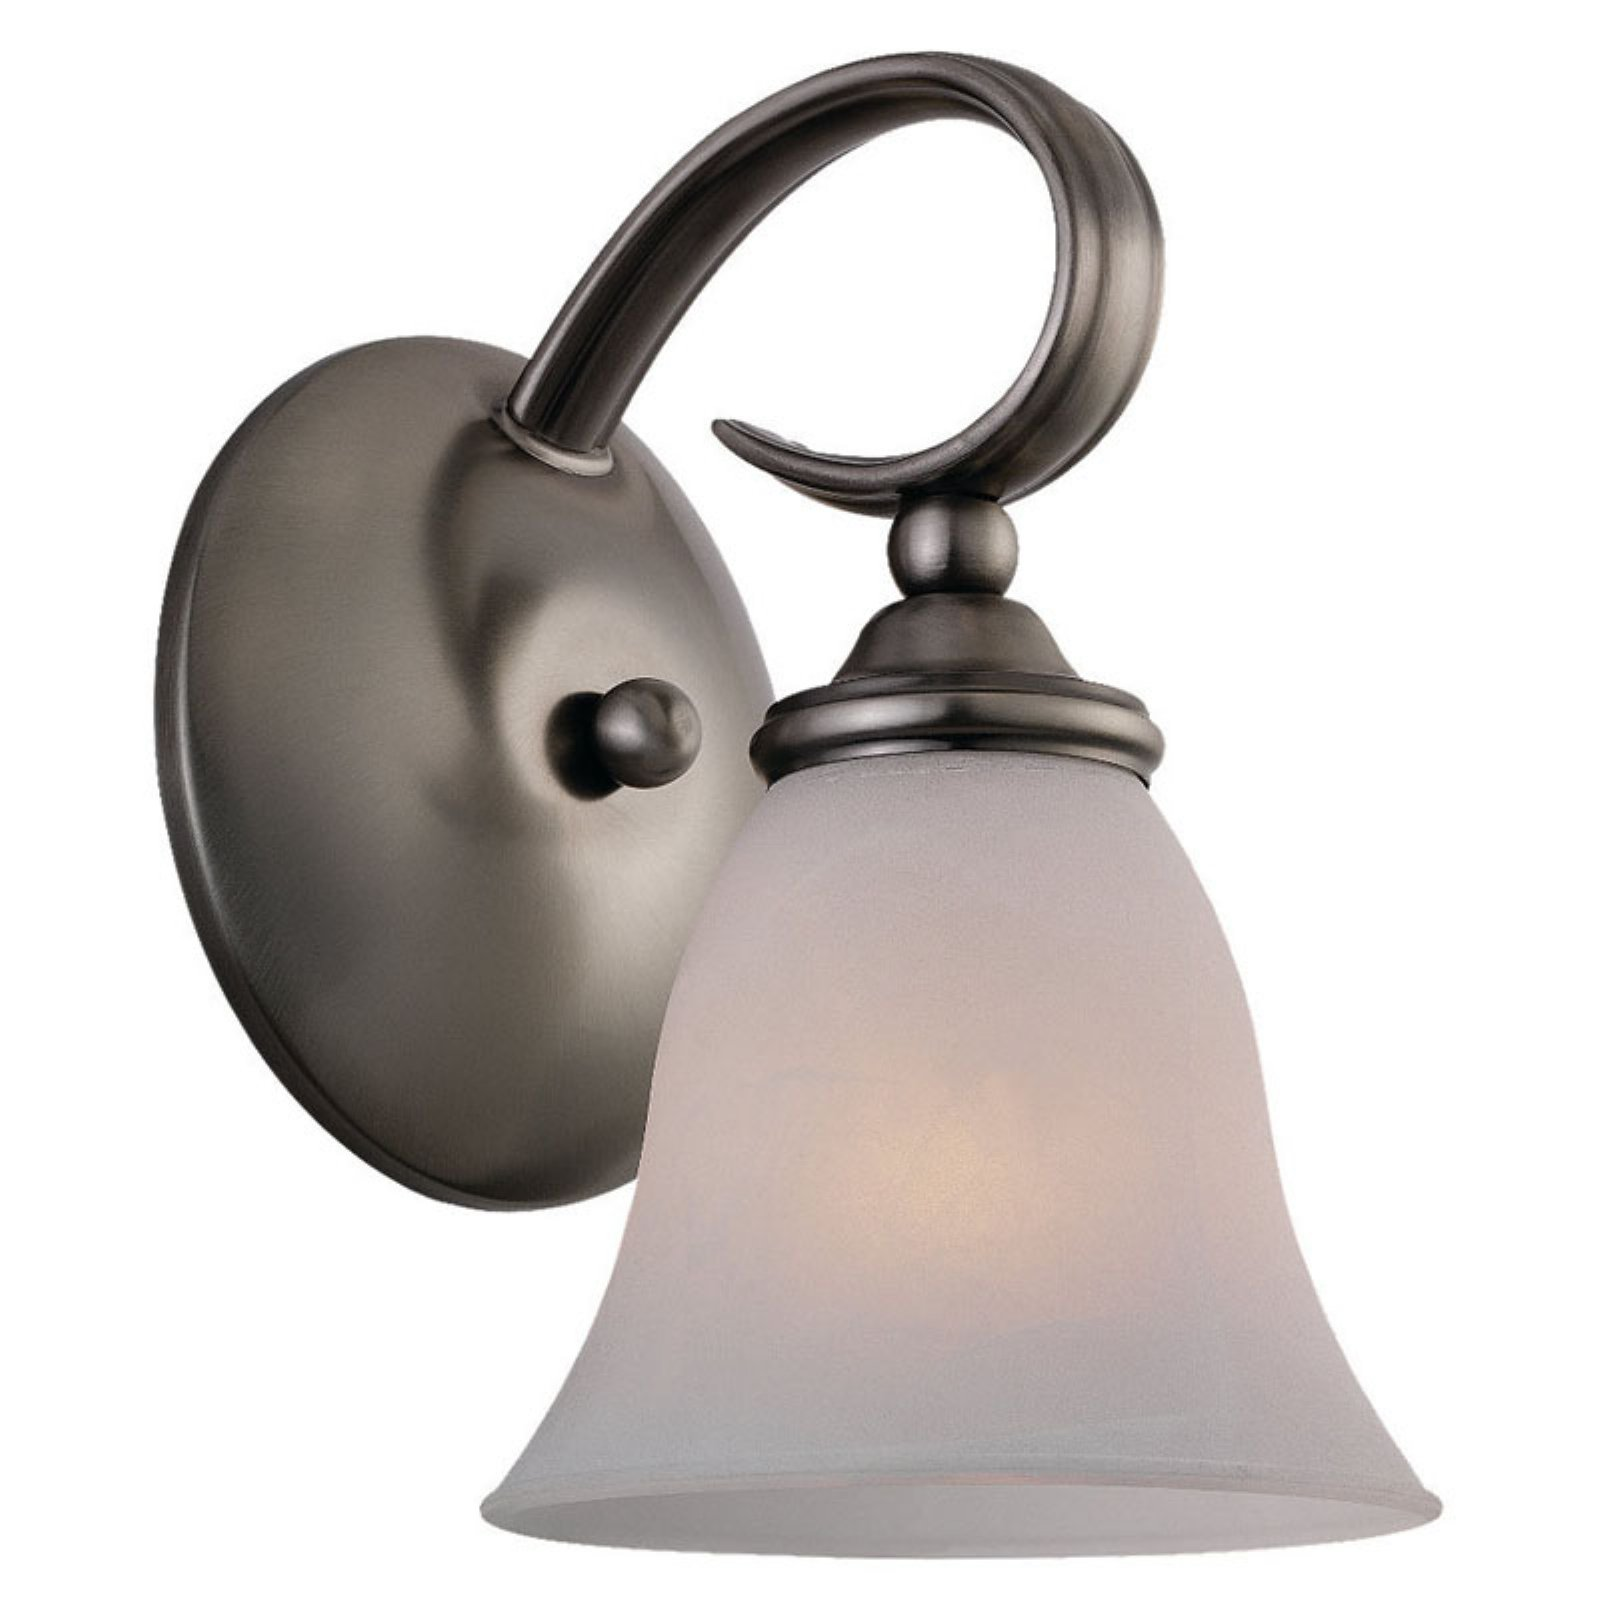 Sea Gull Rialto Bathroom Sconce - 6W in. Antique Brushed Nickel